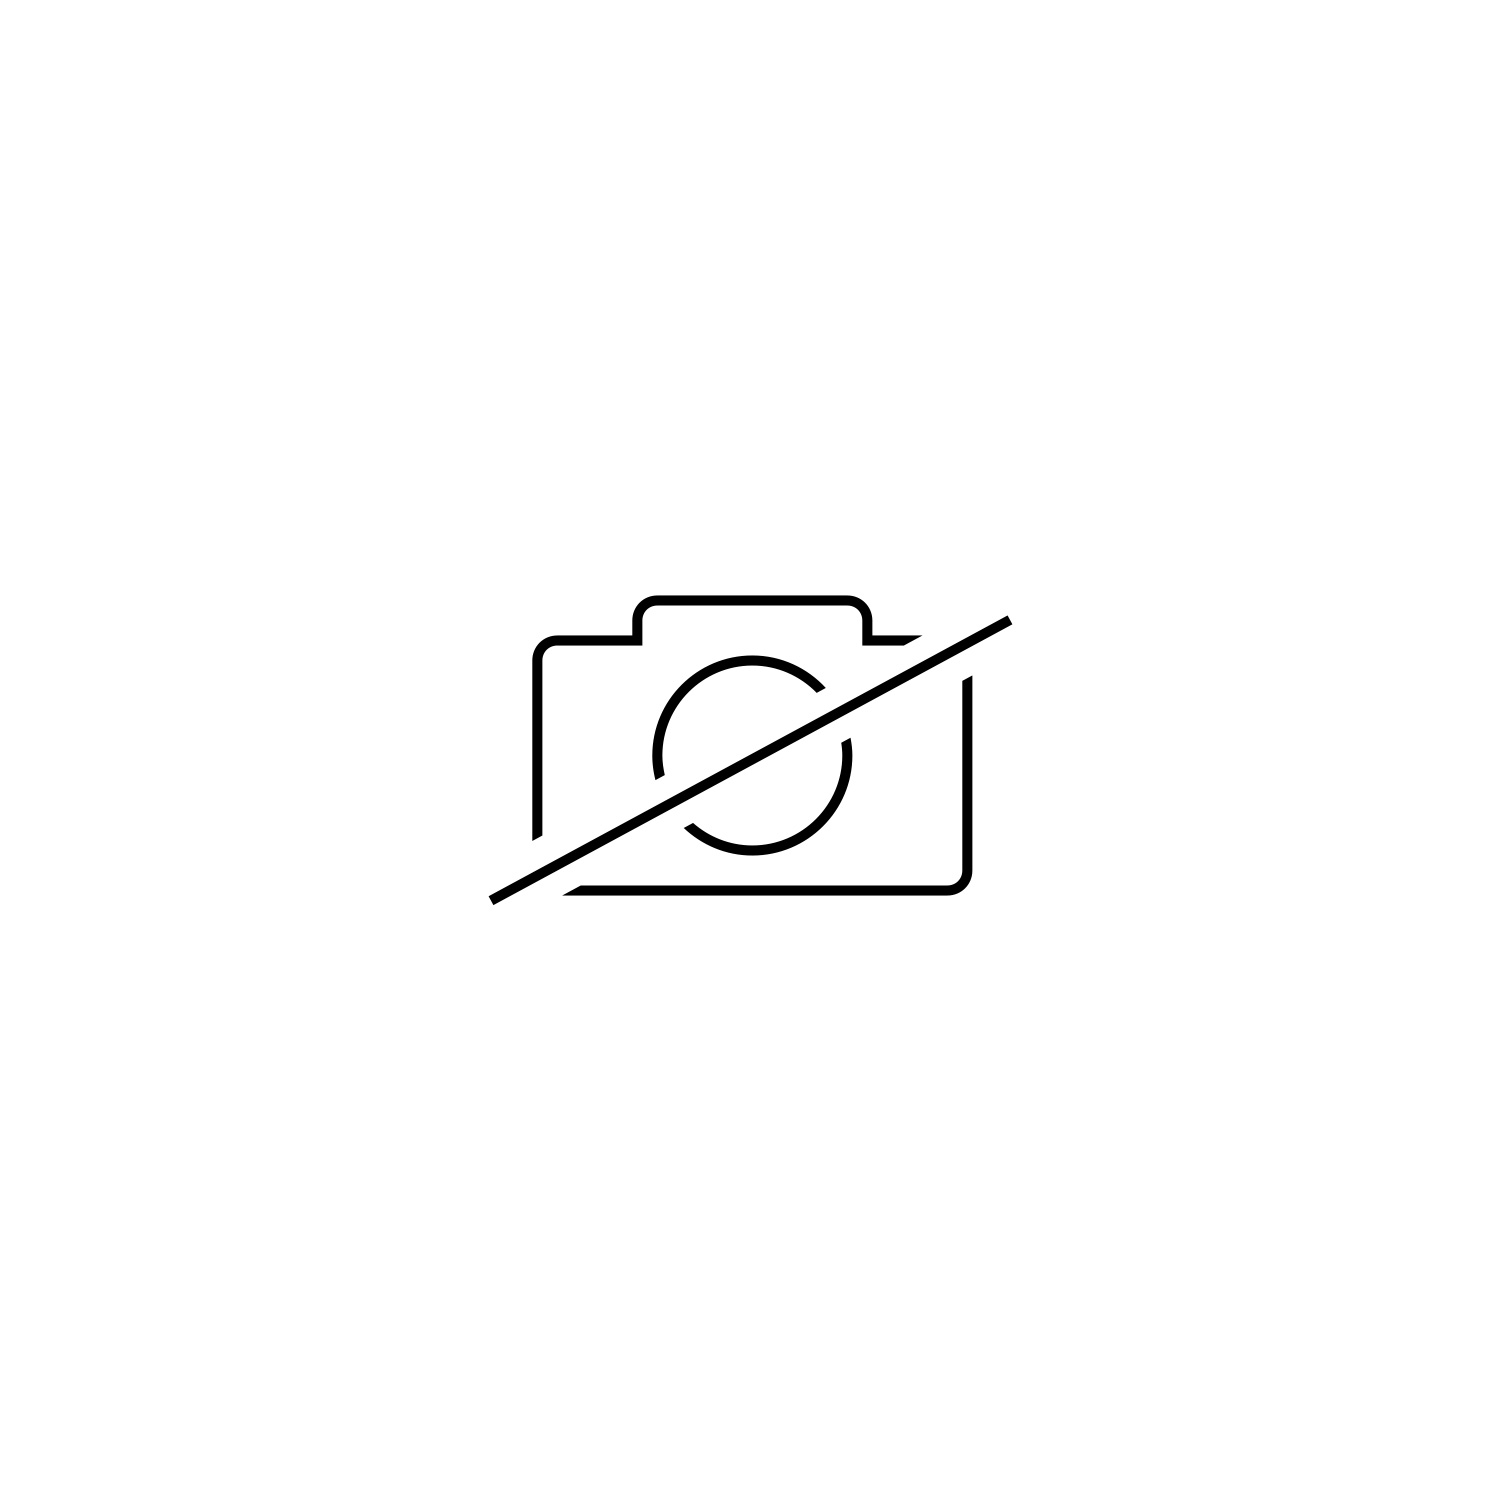 Seriesproduction Models Model Cars Audi Boutique Vorsprung - Audi a series models